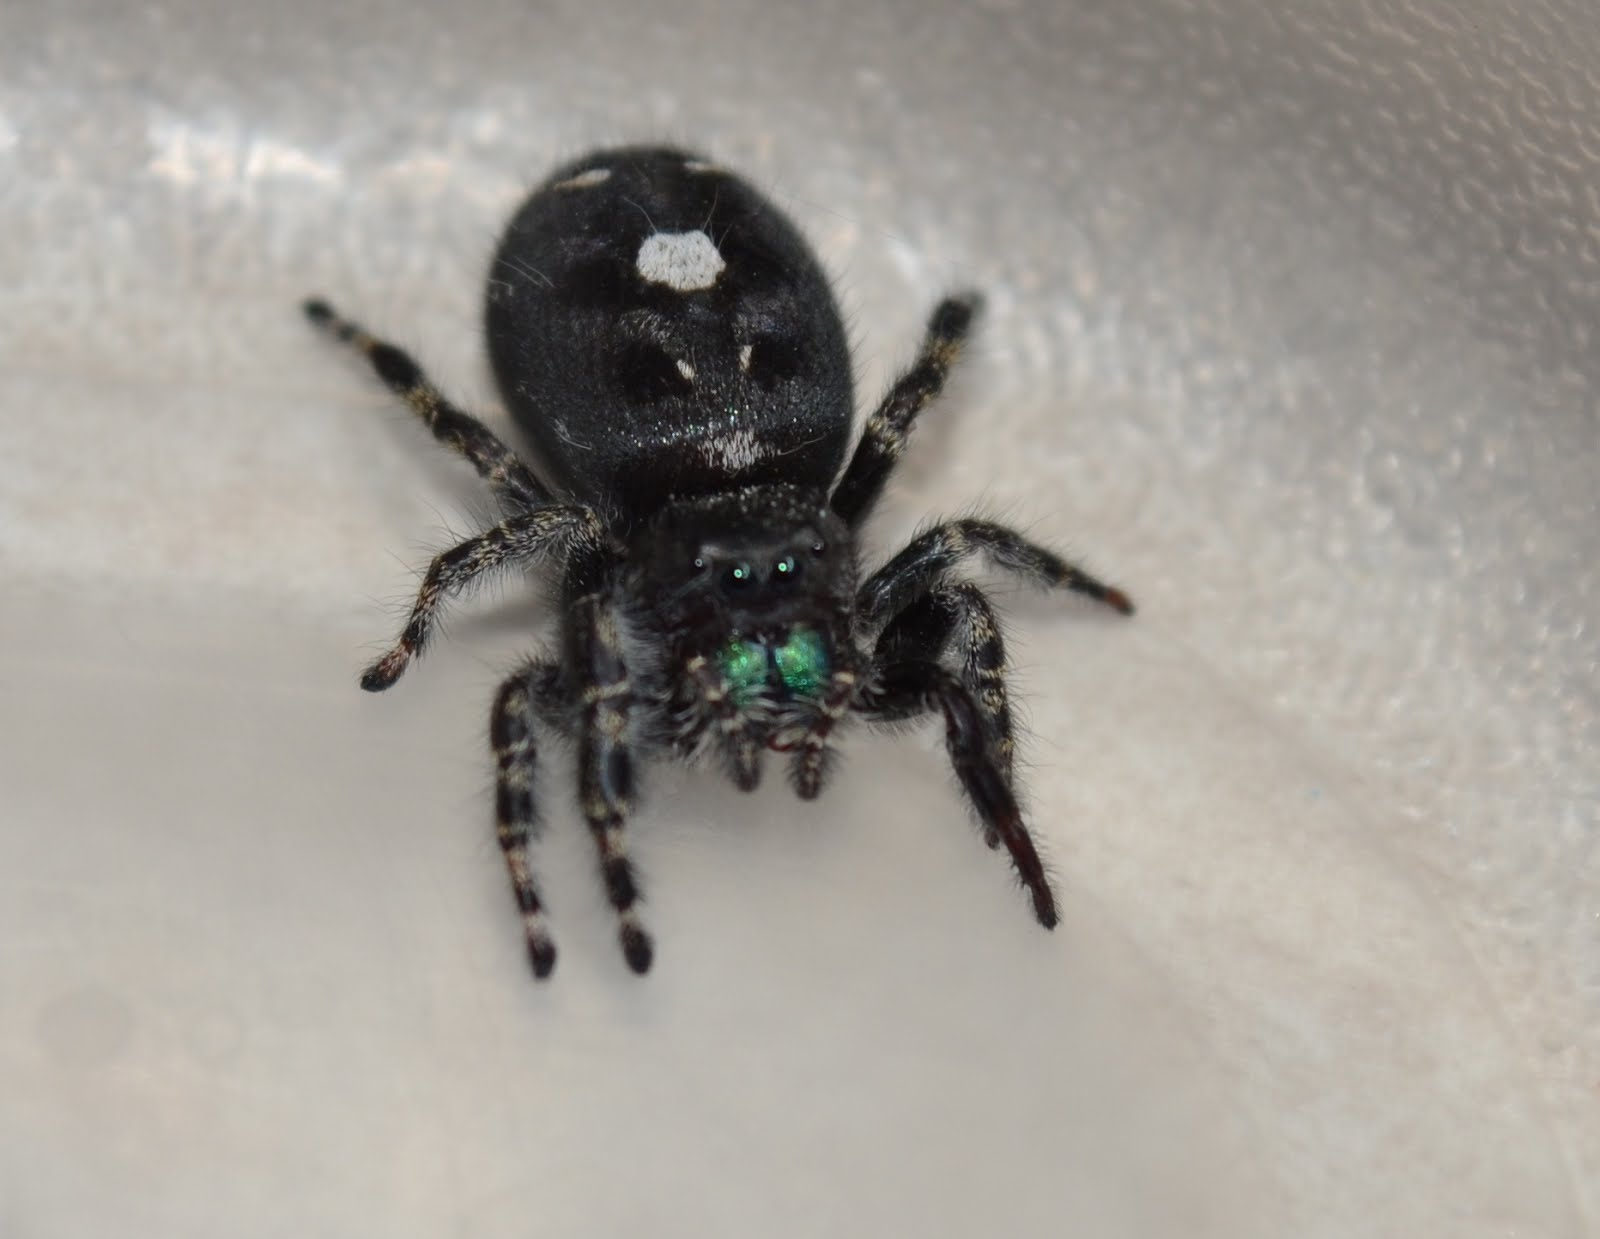 Black jumping spider with red dot - photo#24